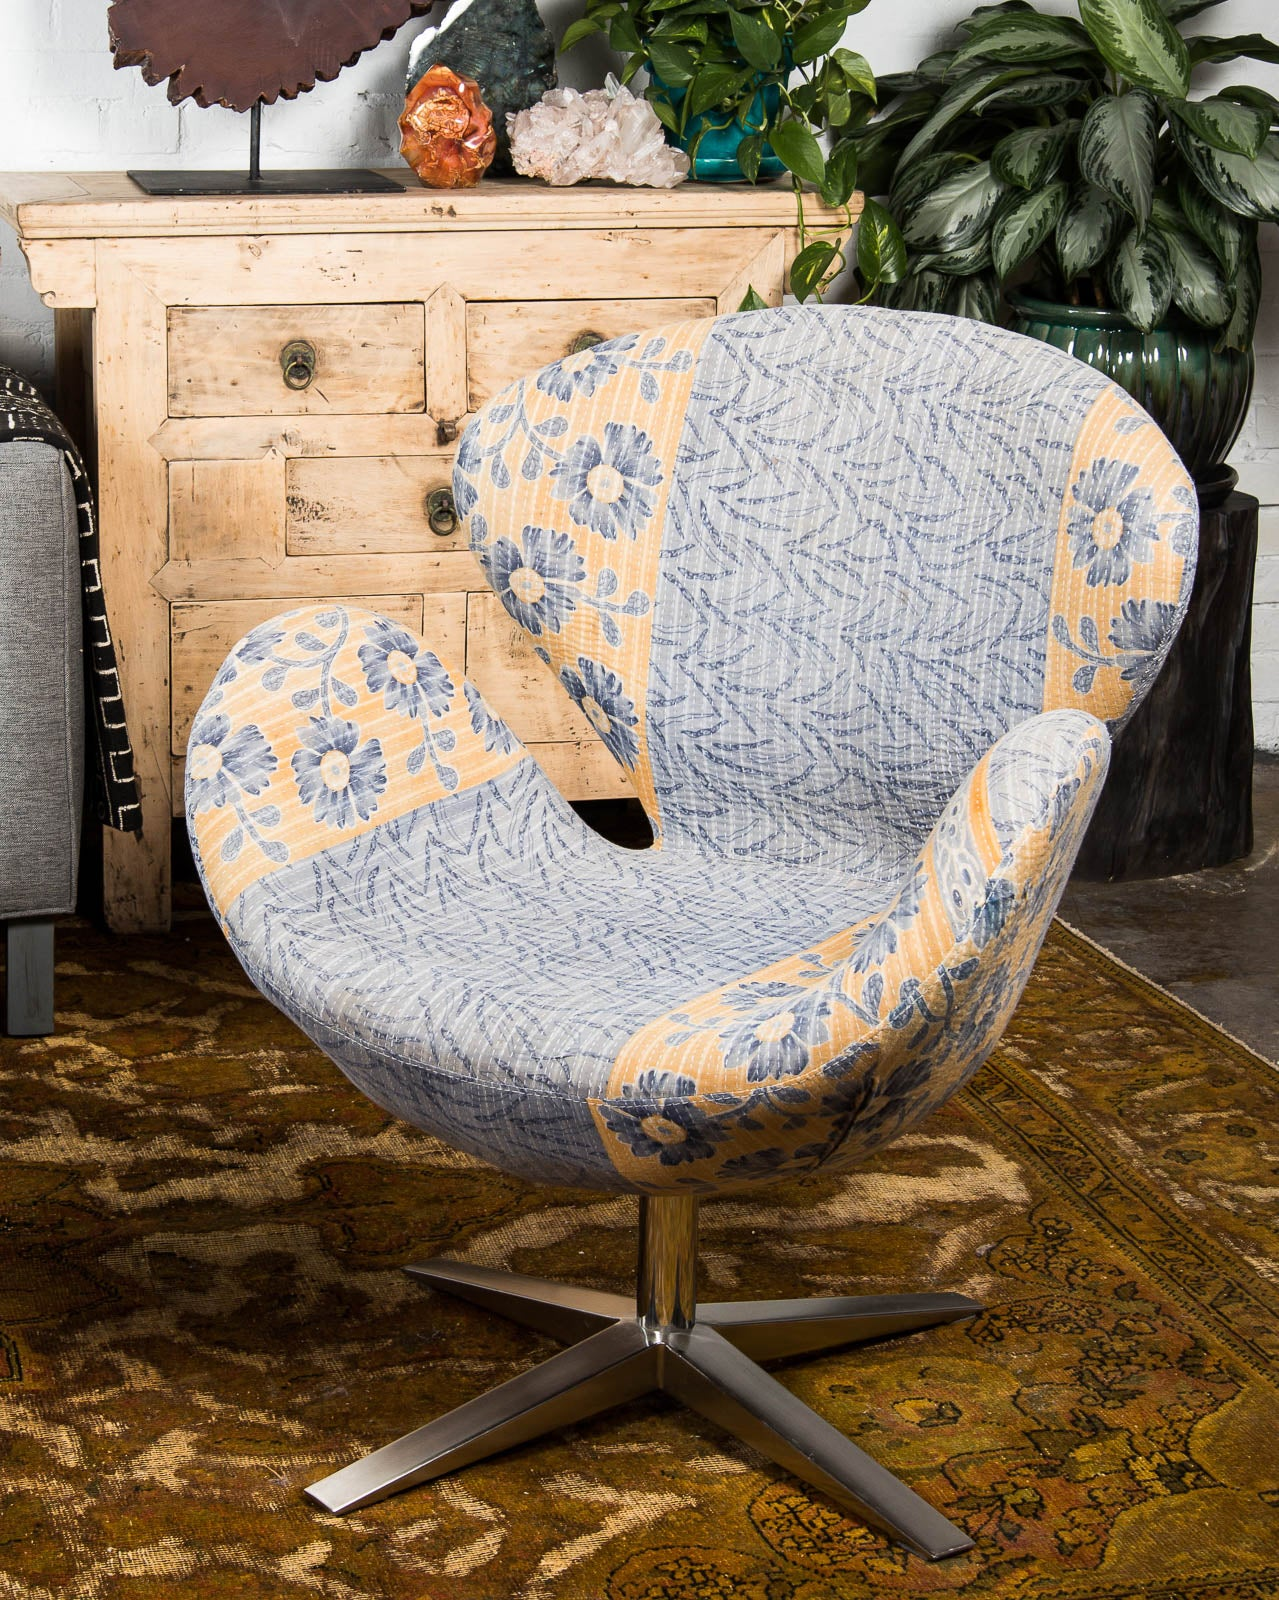 mid century style swan chair covered in vintage kantha textiles